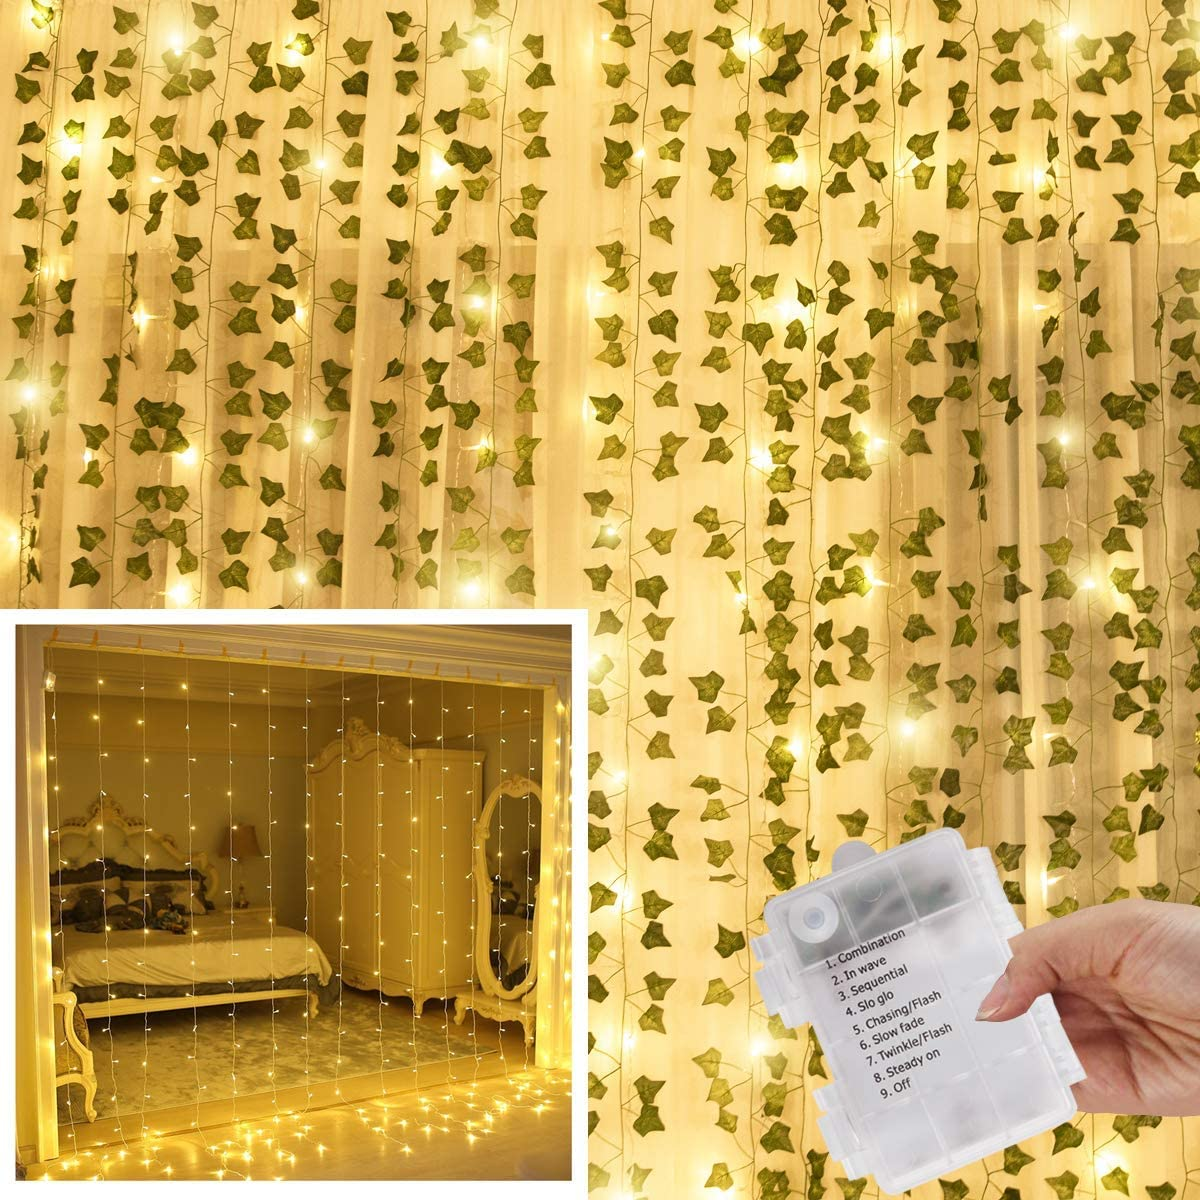 KASZOO 12 Pack Artificial Ivy Leaf Plants with 240 LED Window Curtain String Lights, Fake Plants Vine Hanging Garland, Hanging for Wall Party Wedding Room Home Kitchen Indoor & Outdoor Decoration